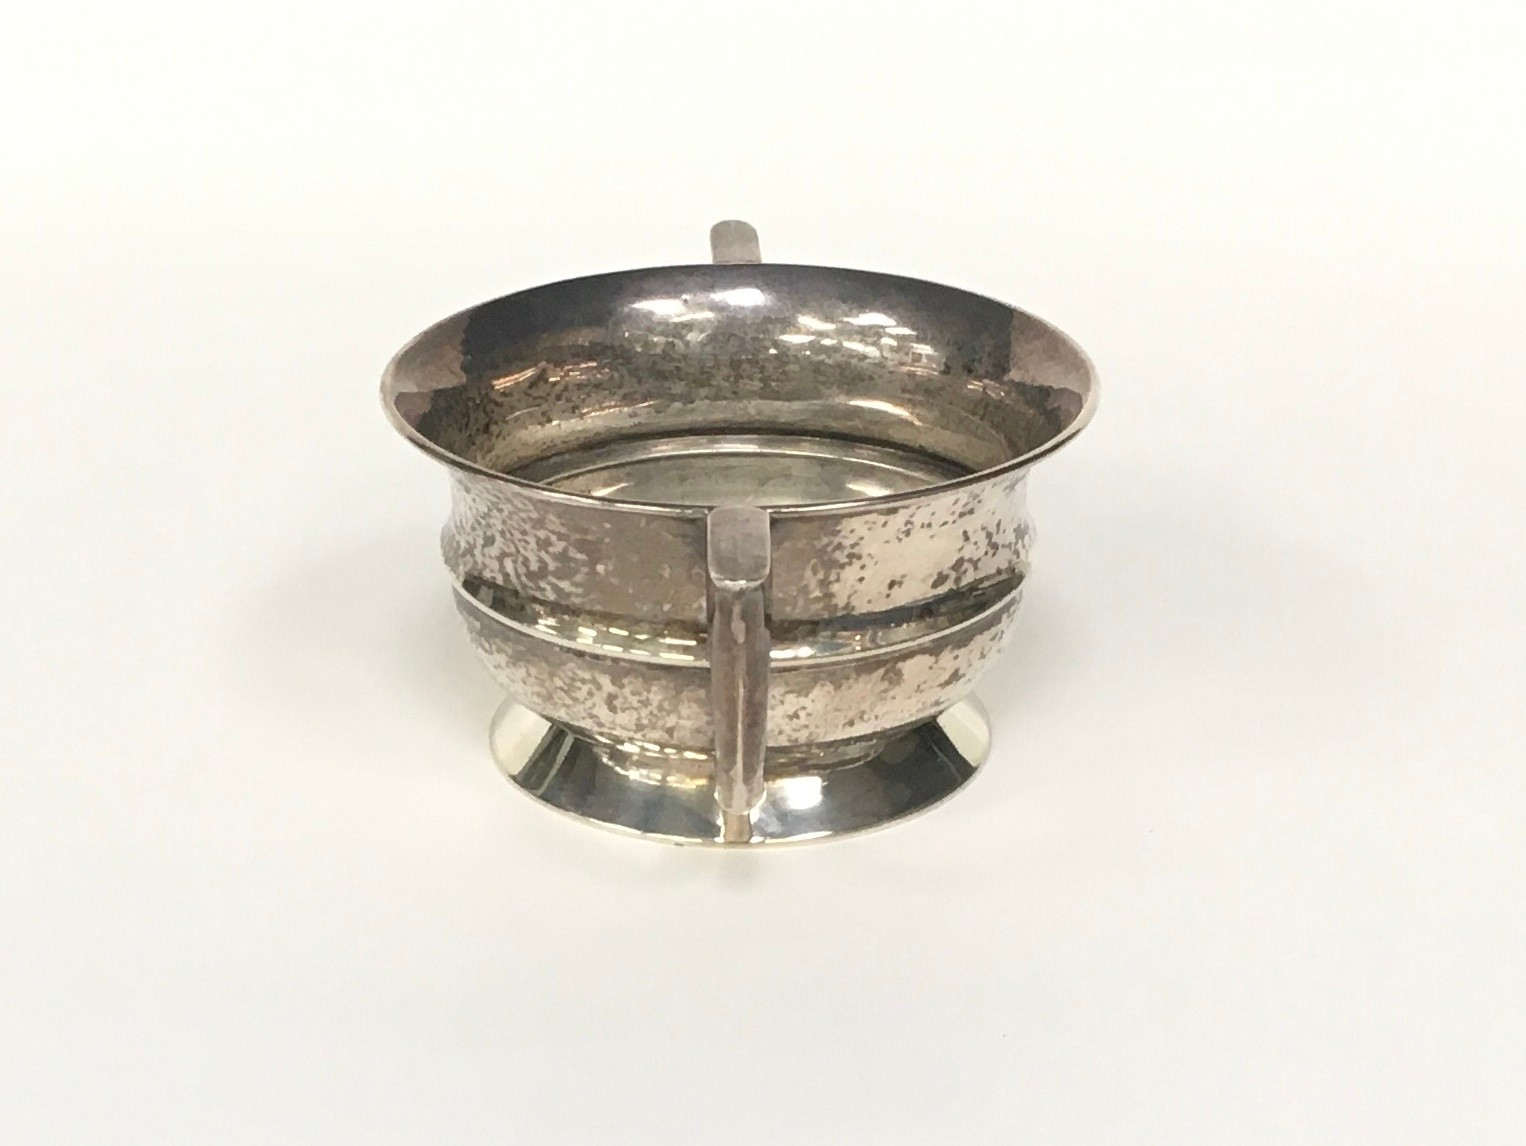 Silver twin handled bowl 100gm - Image 2 of 4